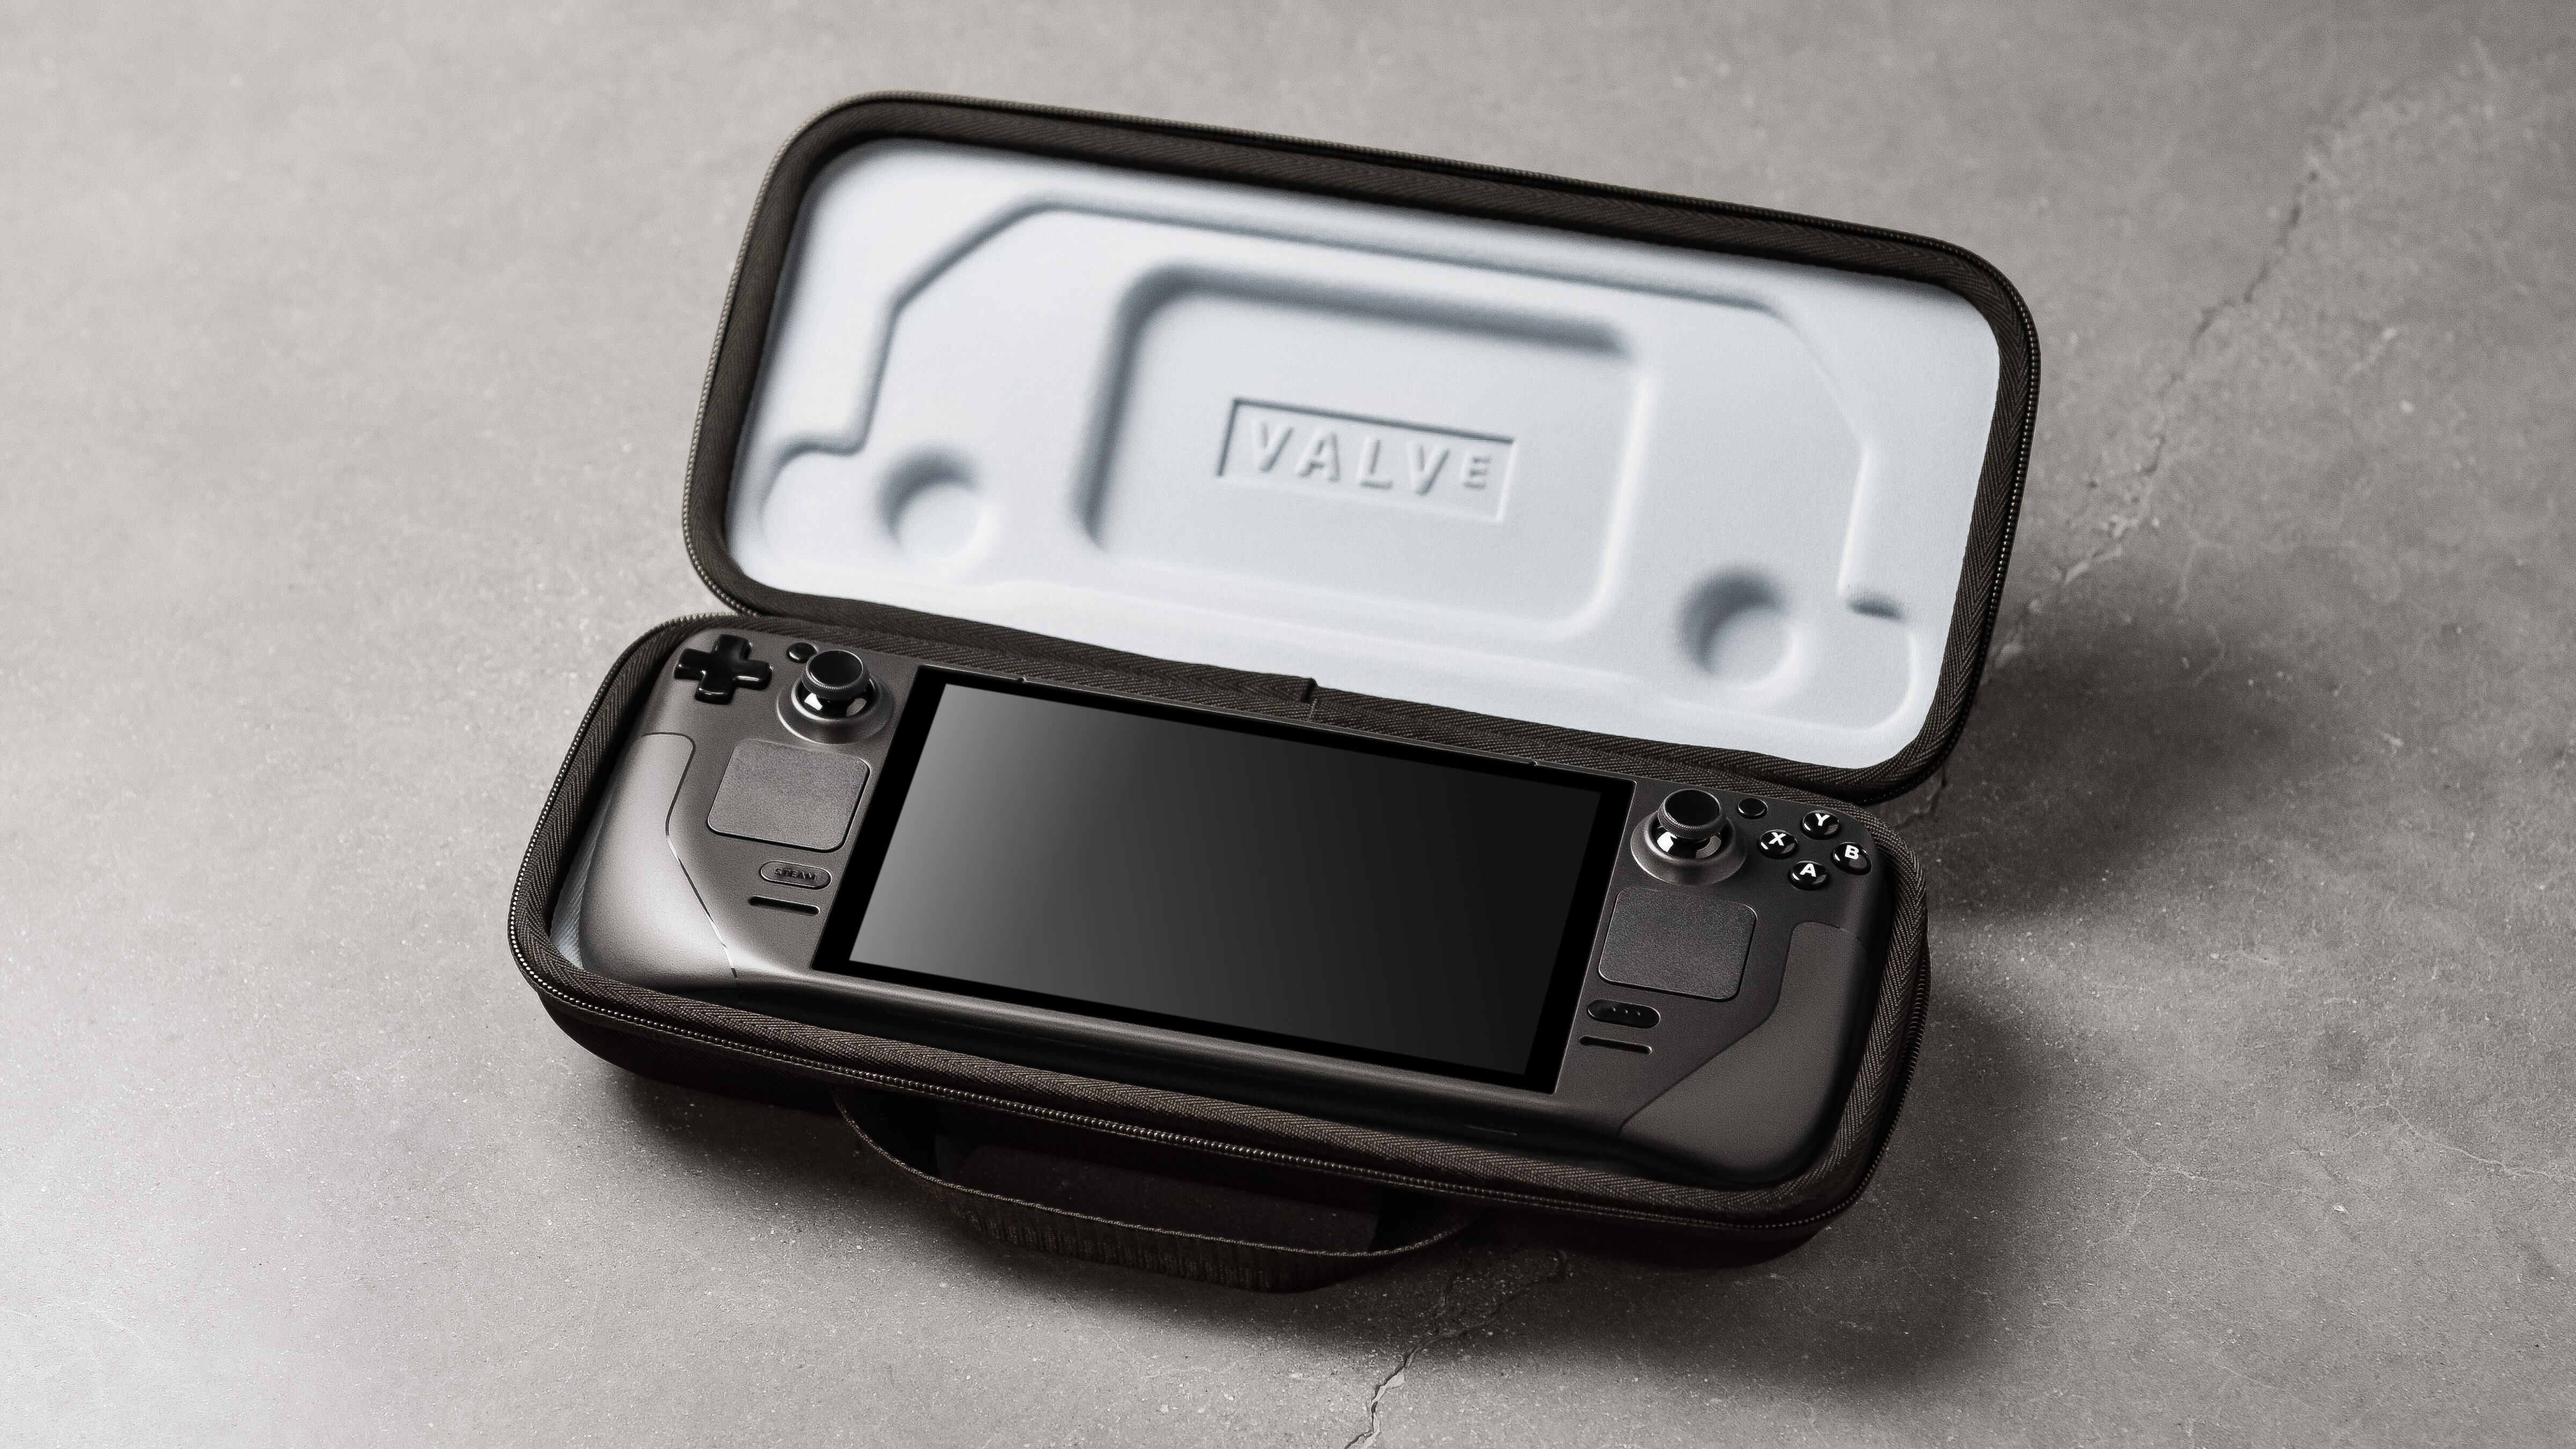 a photo of a Steam Deck, a new handheld console from Valve, in a case